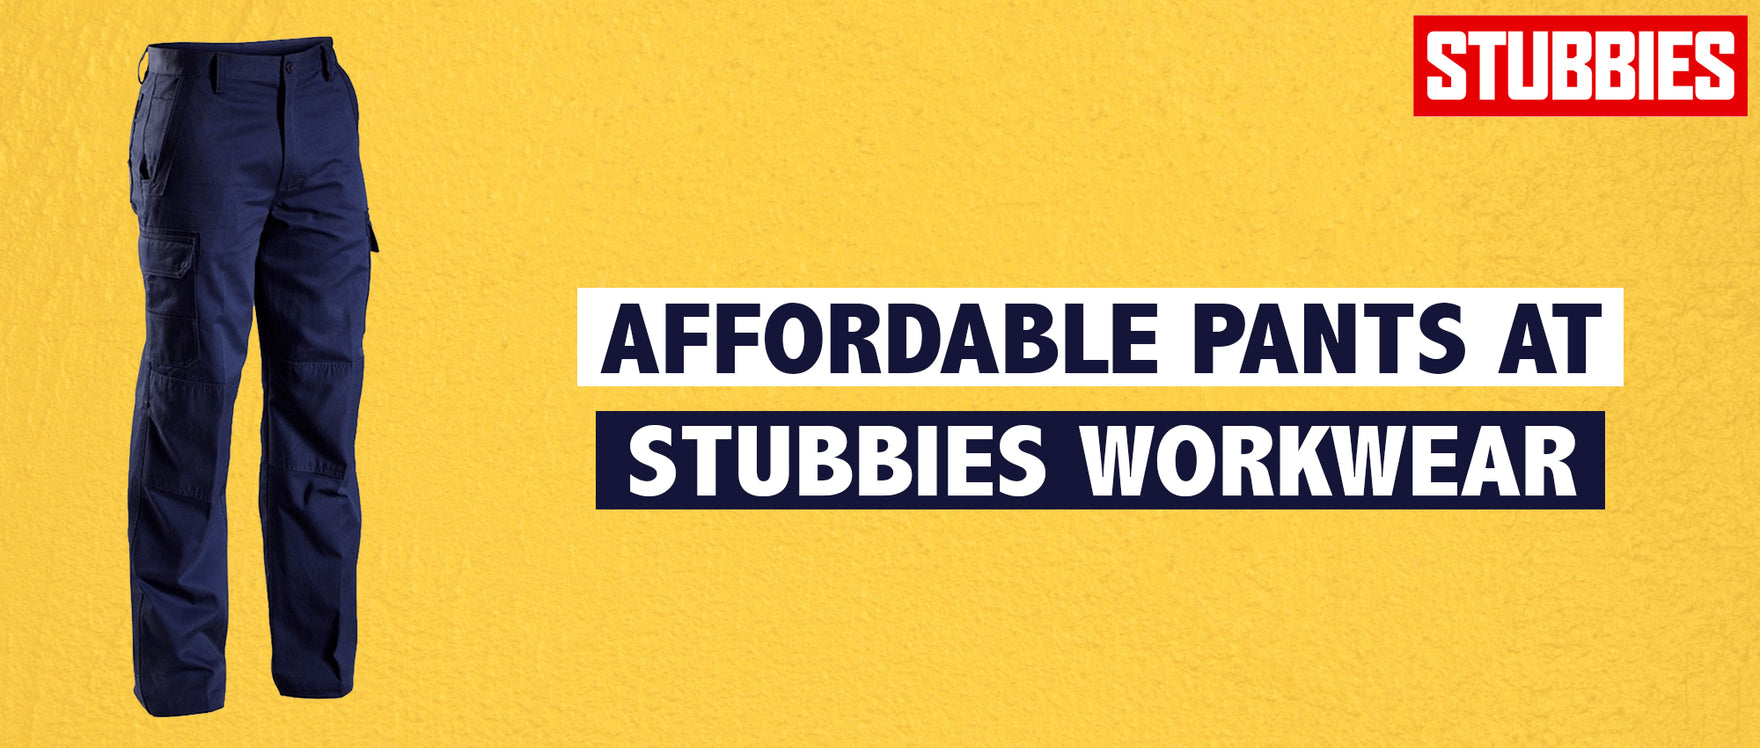 Affordable Pants at Stubbies Workwear